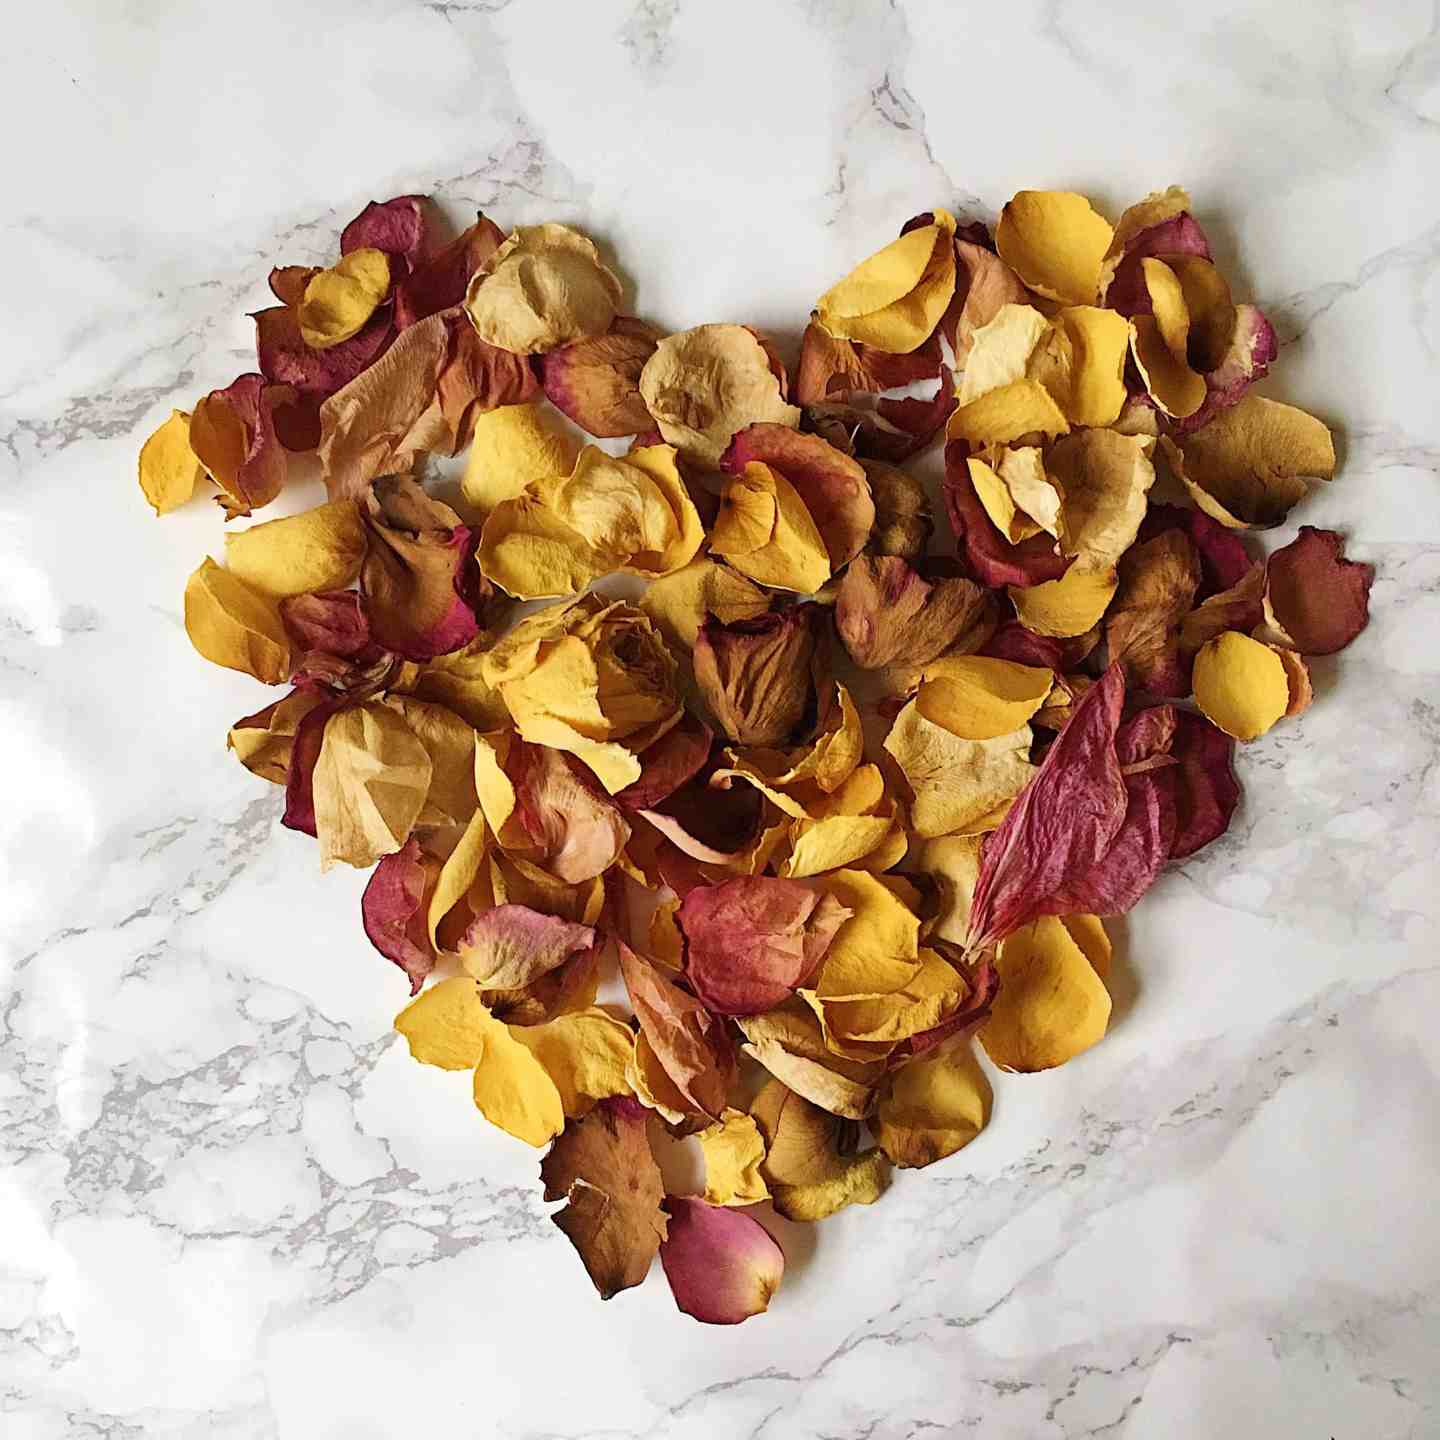 How and Why to use Rose in your Beauty Routine